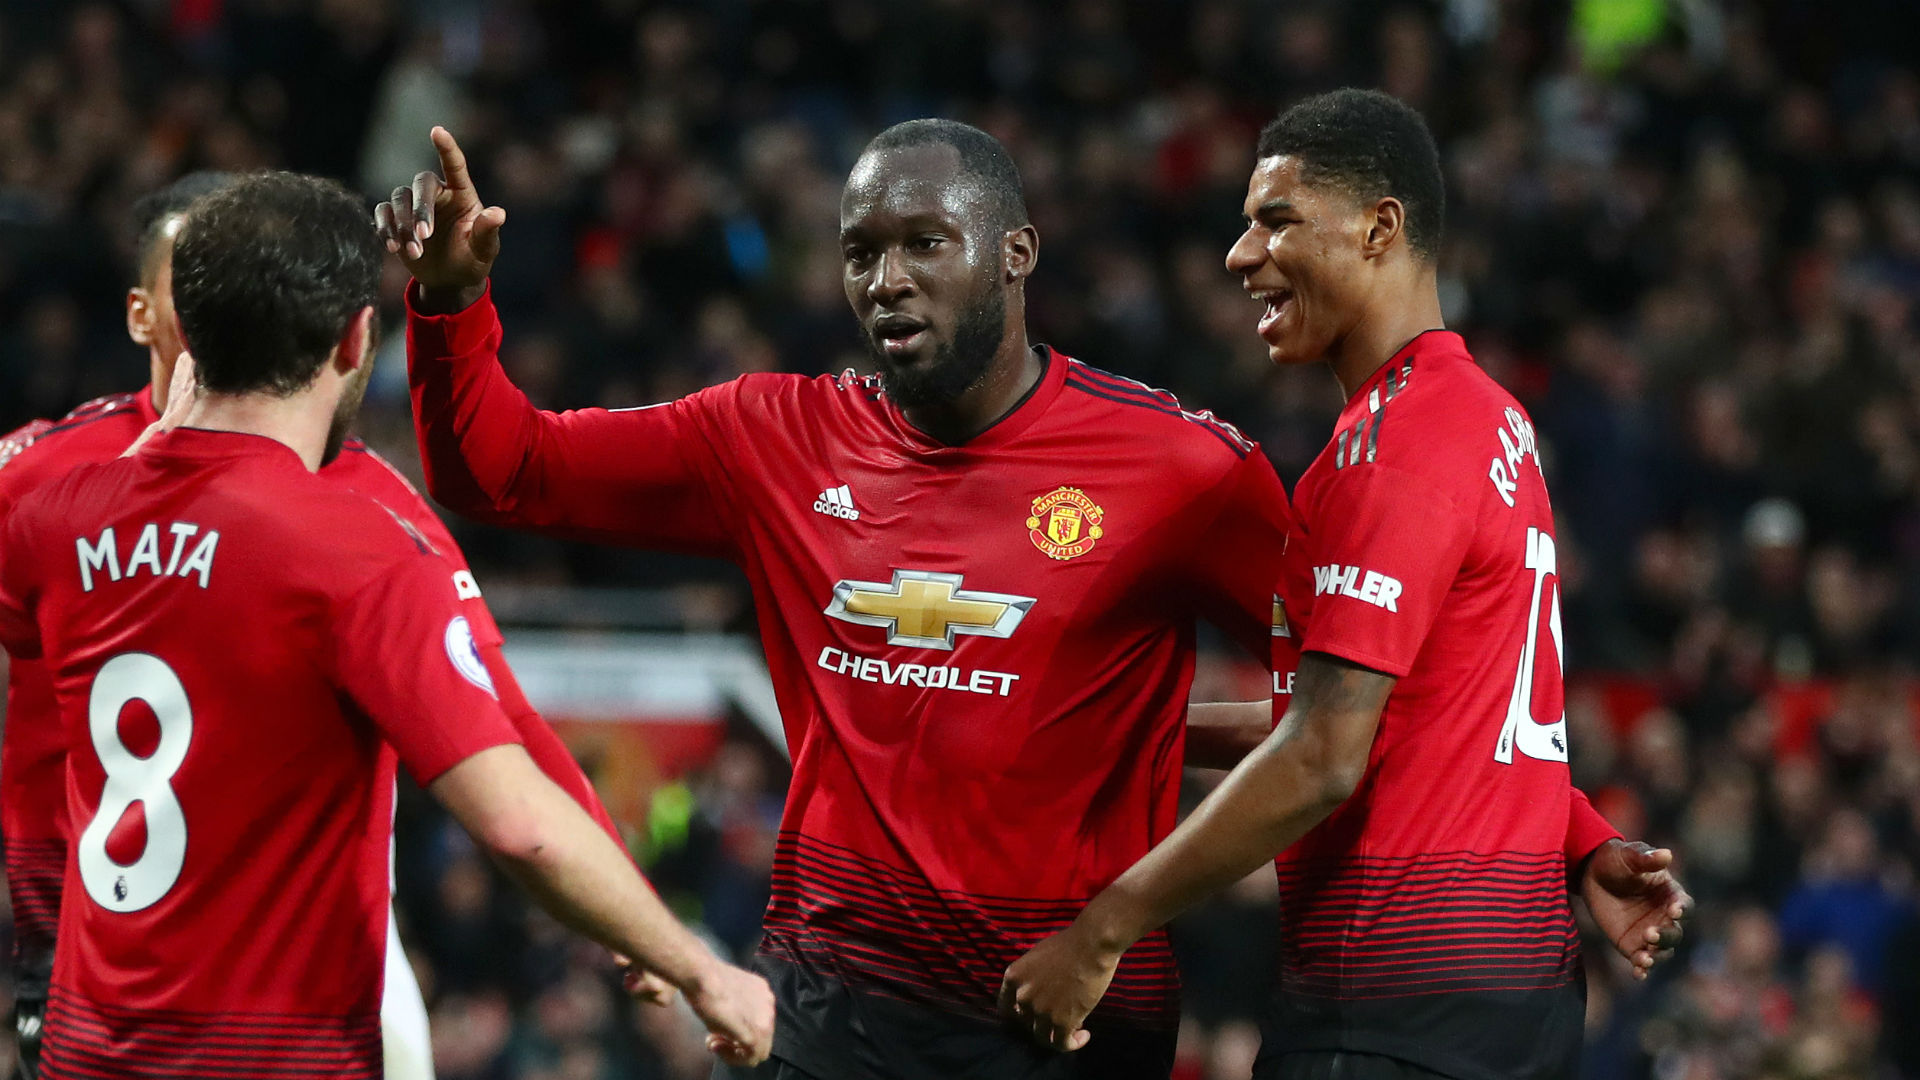 Lukaku halts huge Old Trafford goal drought